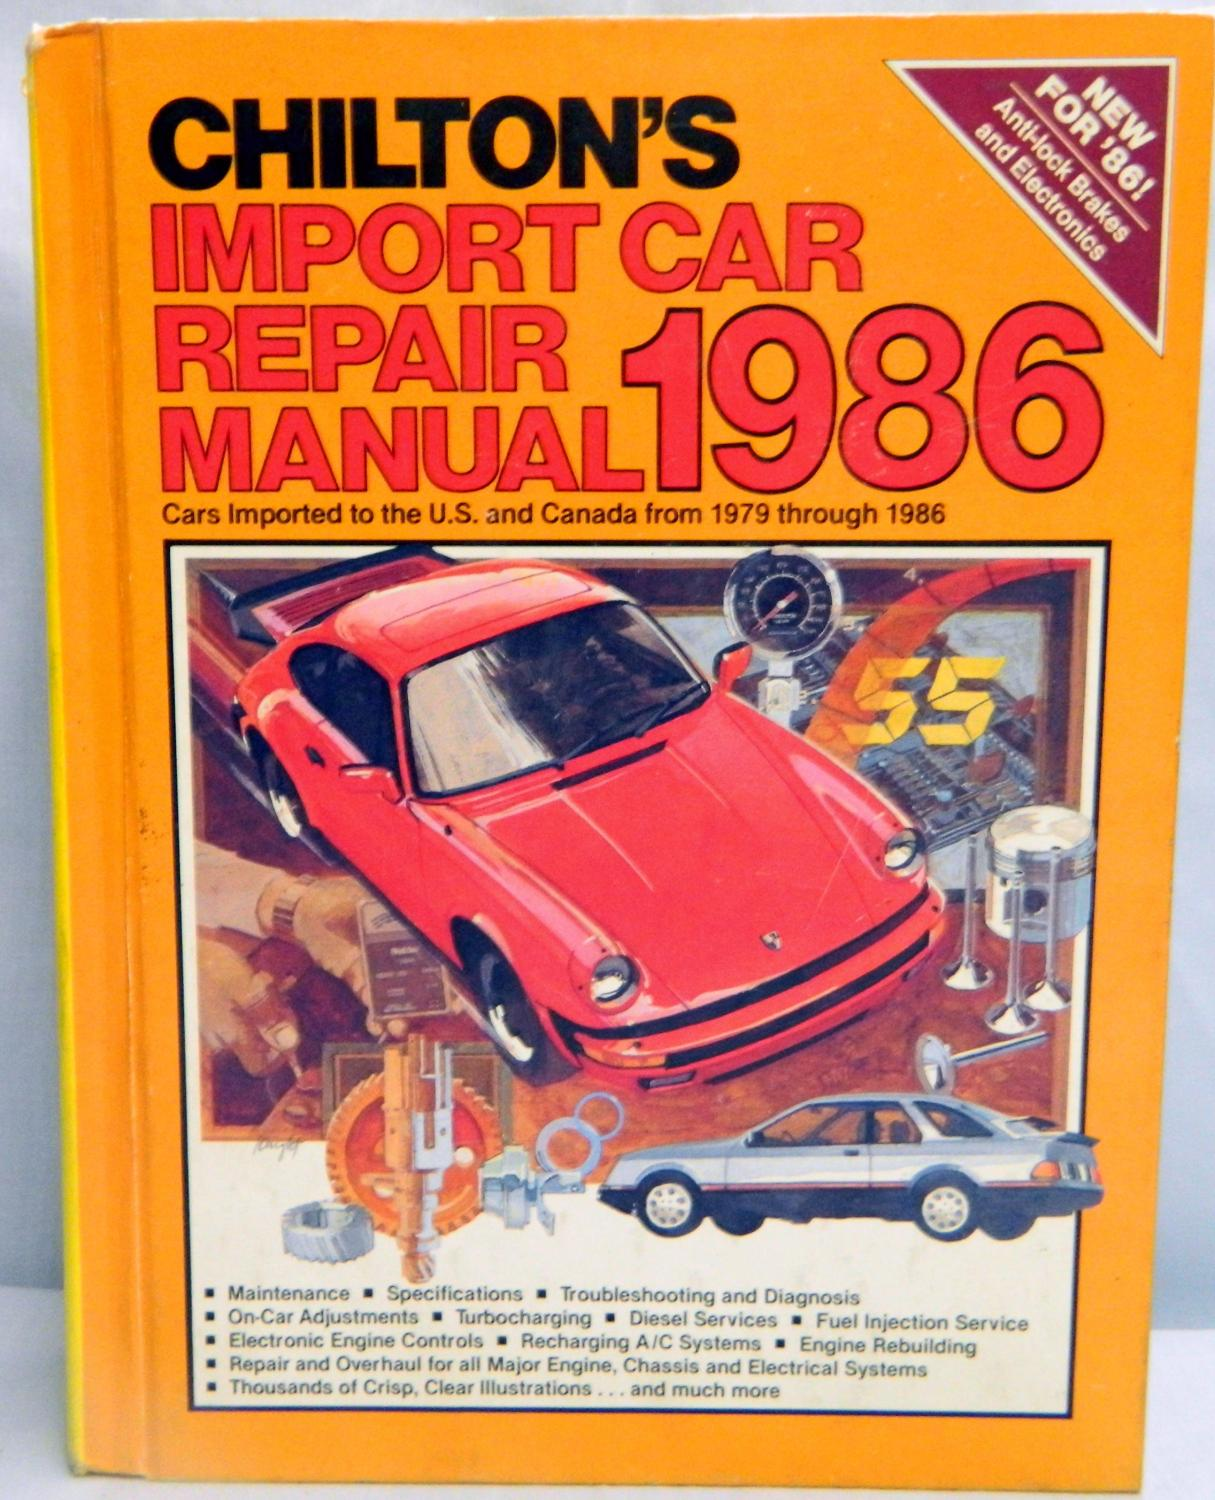 CHILTON'S IMPORT CAR REPAIR MANUAL 1986 Cars Imported to the U.S. And  Canada from 1979-